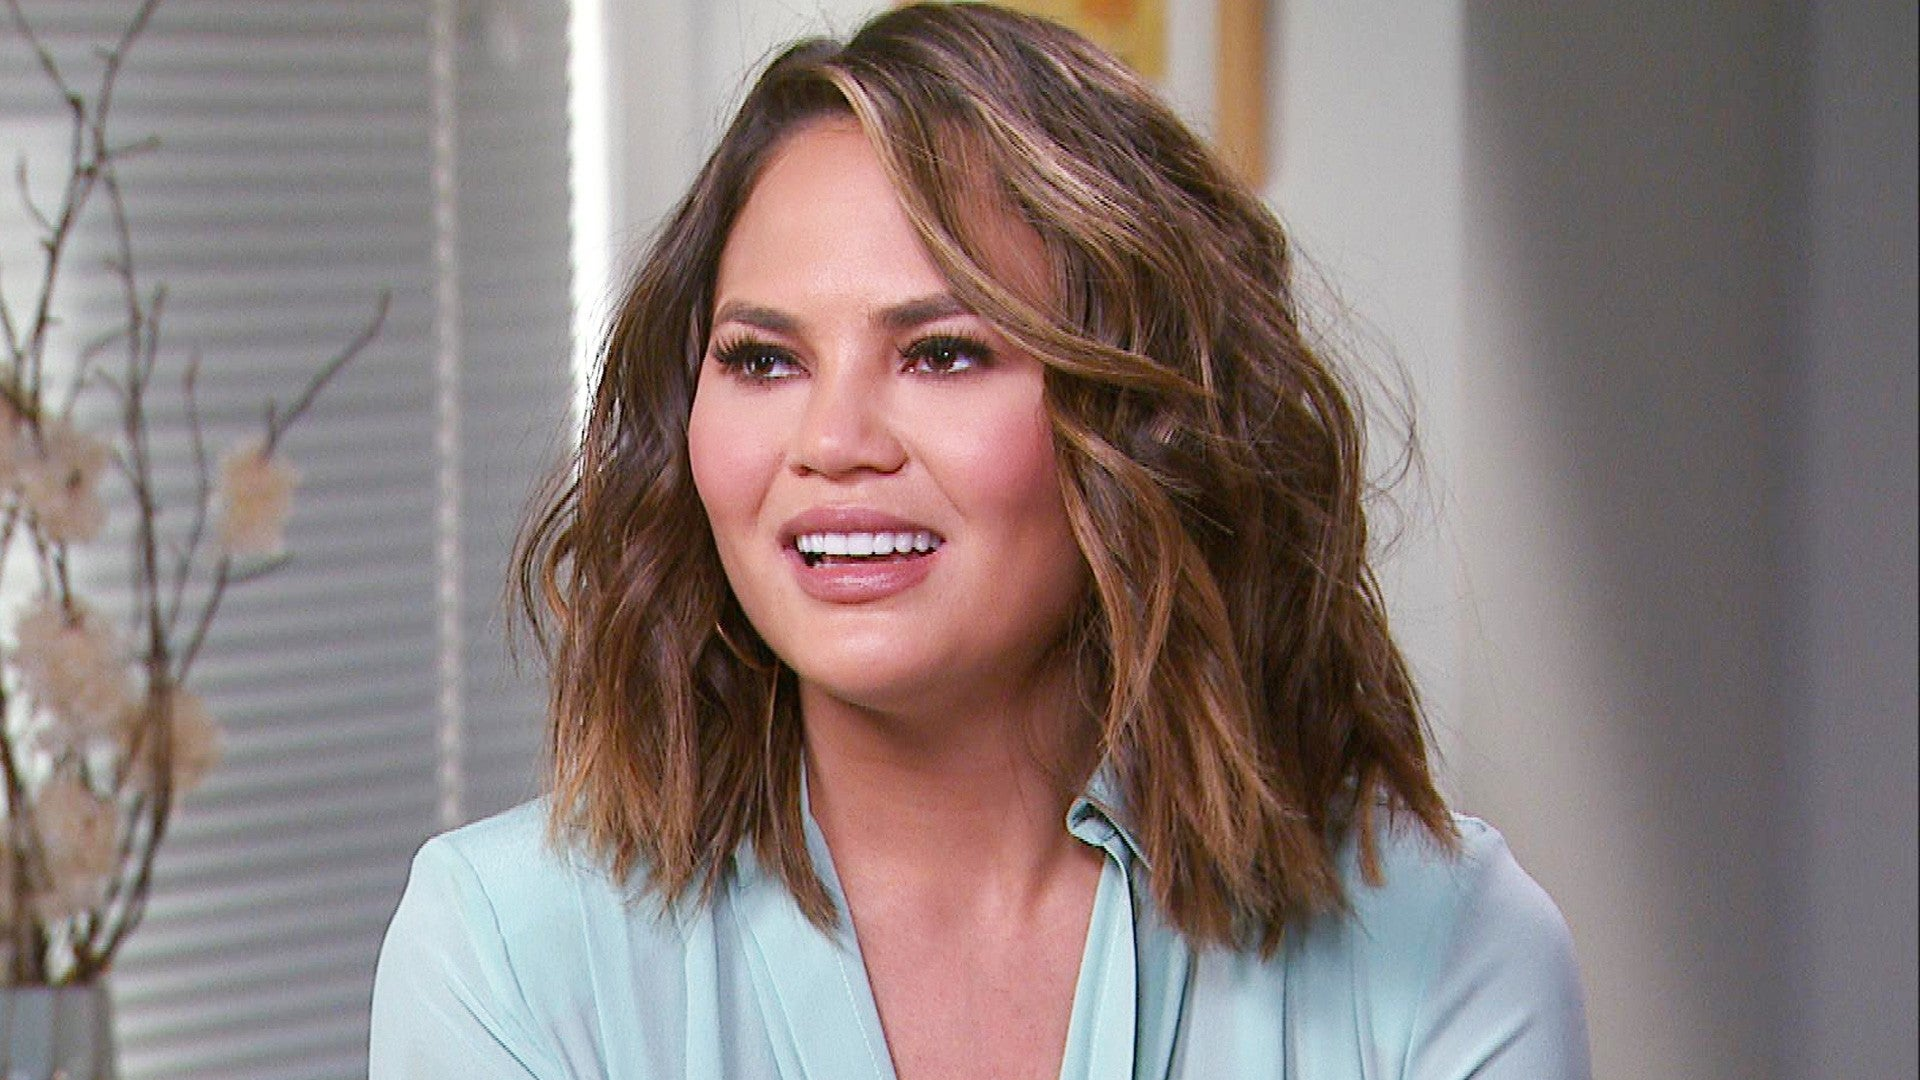 chrissy-teigen-says-shell-be-back-to-the-plastic-surgeon-to-make-her-chest-even-smaller-after-removing-her-implants